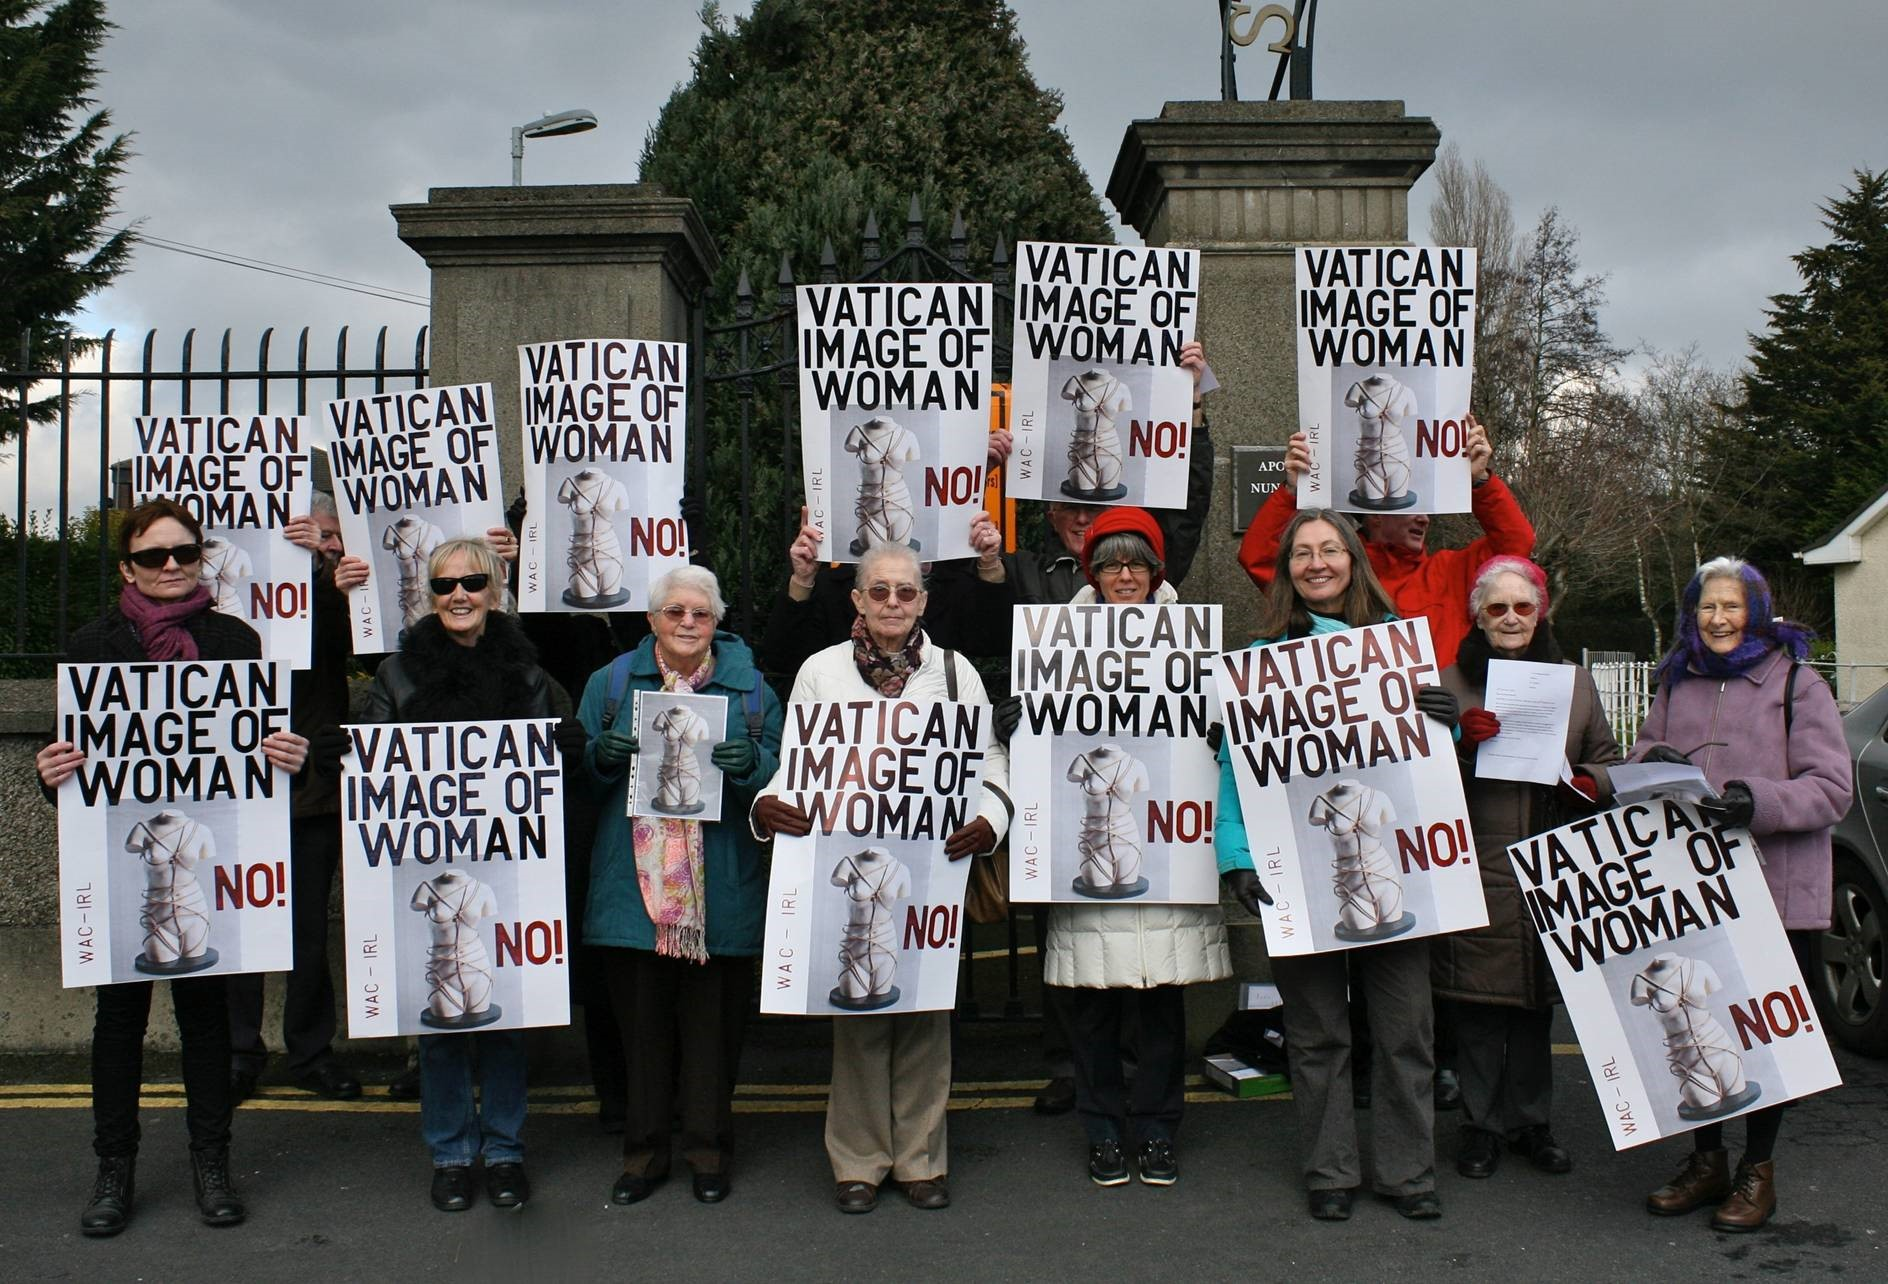 We Are Church Ireland protests about unacceptable image of women